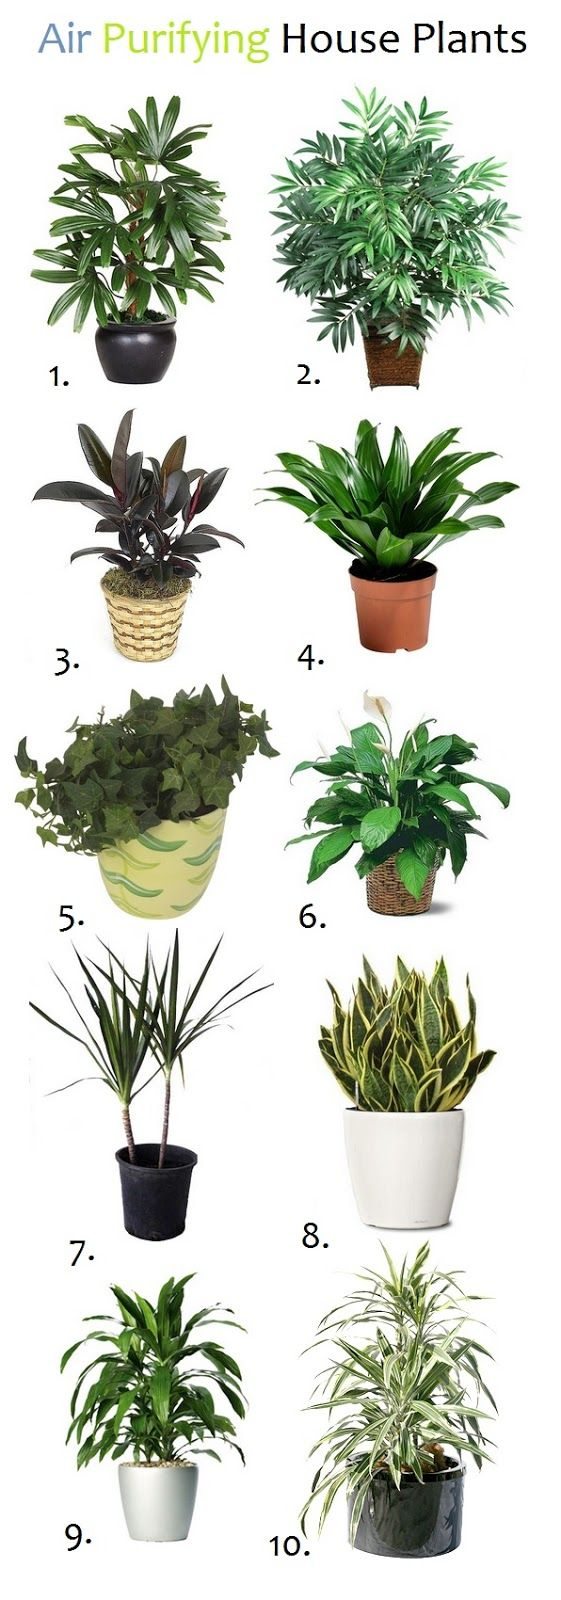 10 air purifying house plants garden indoor plants Images of indoor plants